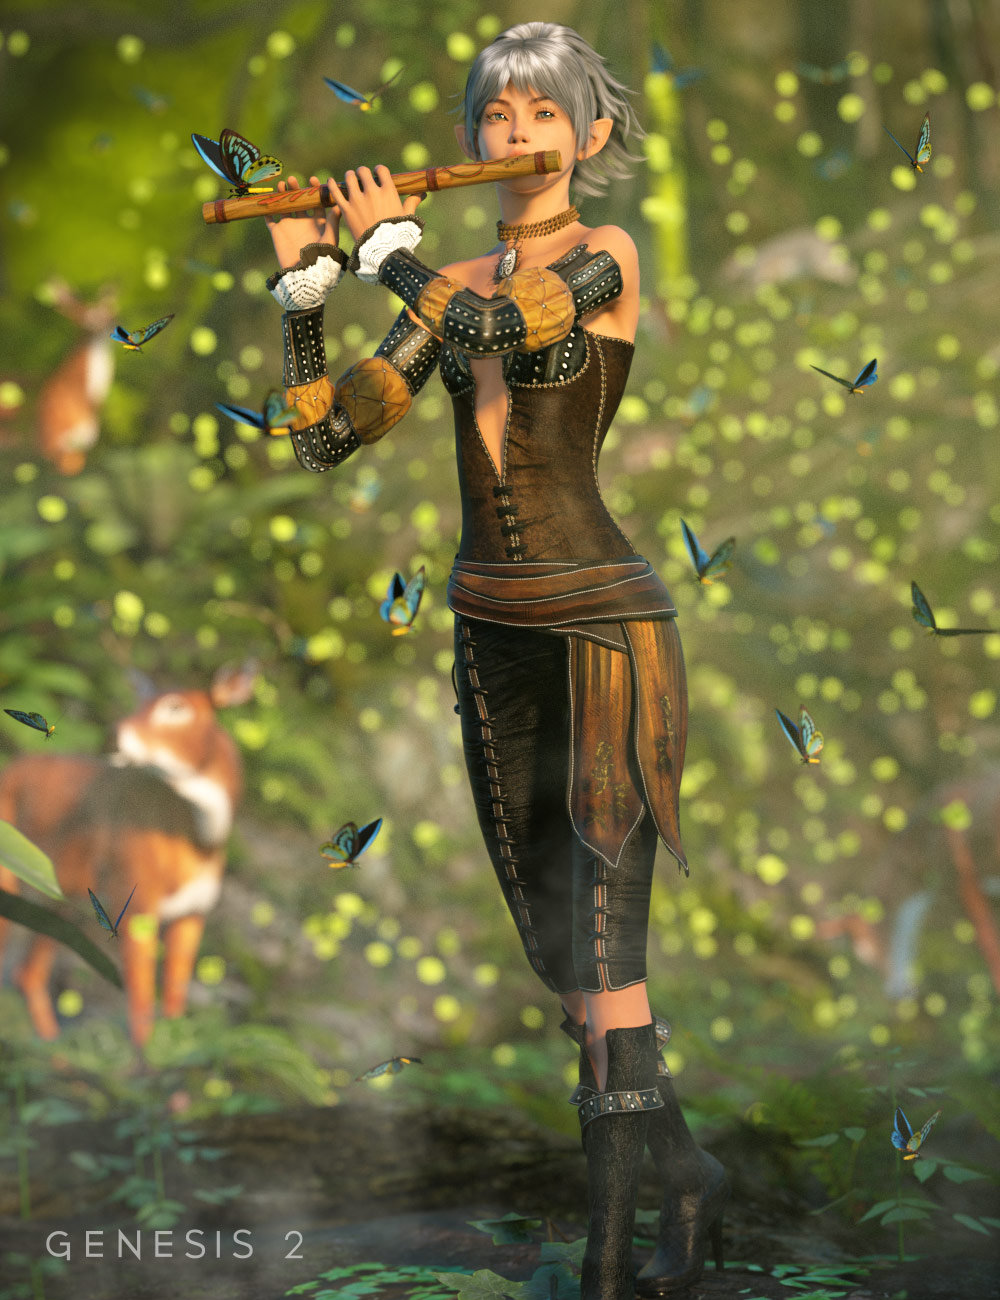 Elven Grove Outfit for Genesis 2 Female(s) by: Barbara BrundonSarsa, 3D Models by Daz 3D